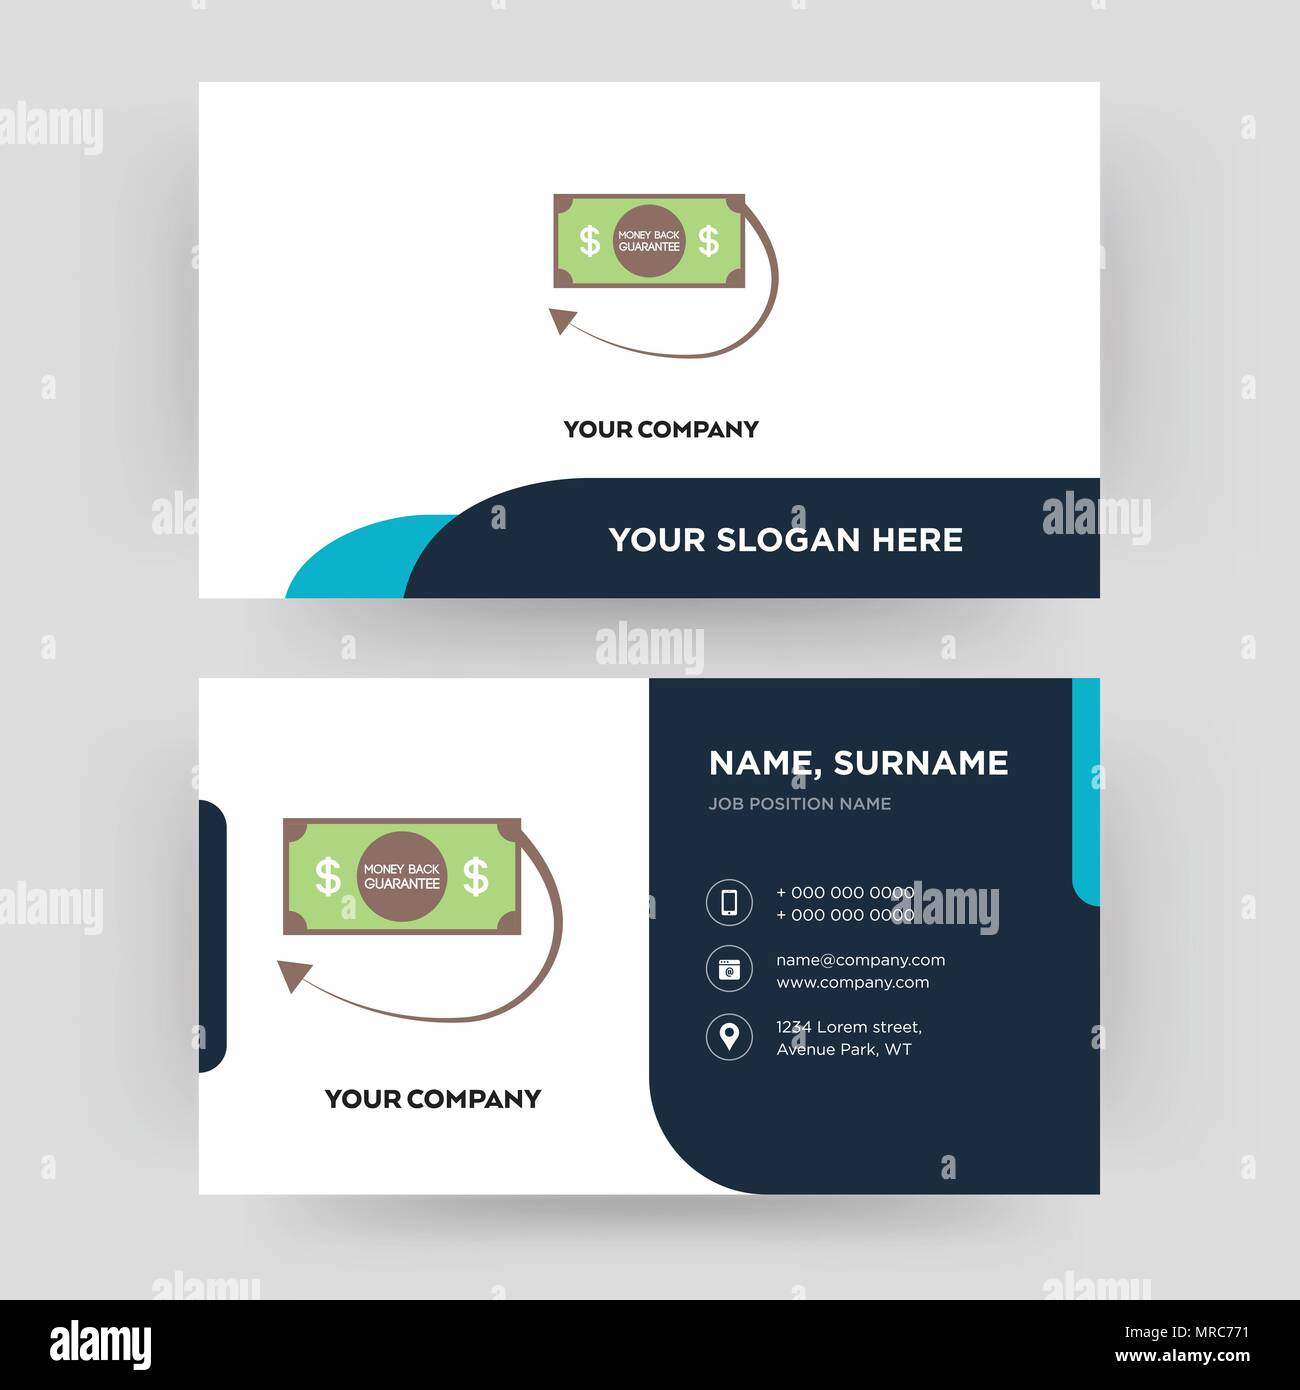 money back guarantee, business card design template, Visiting for ...